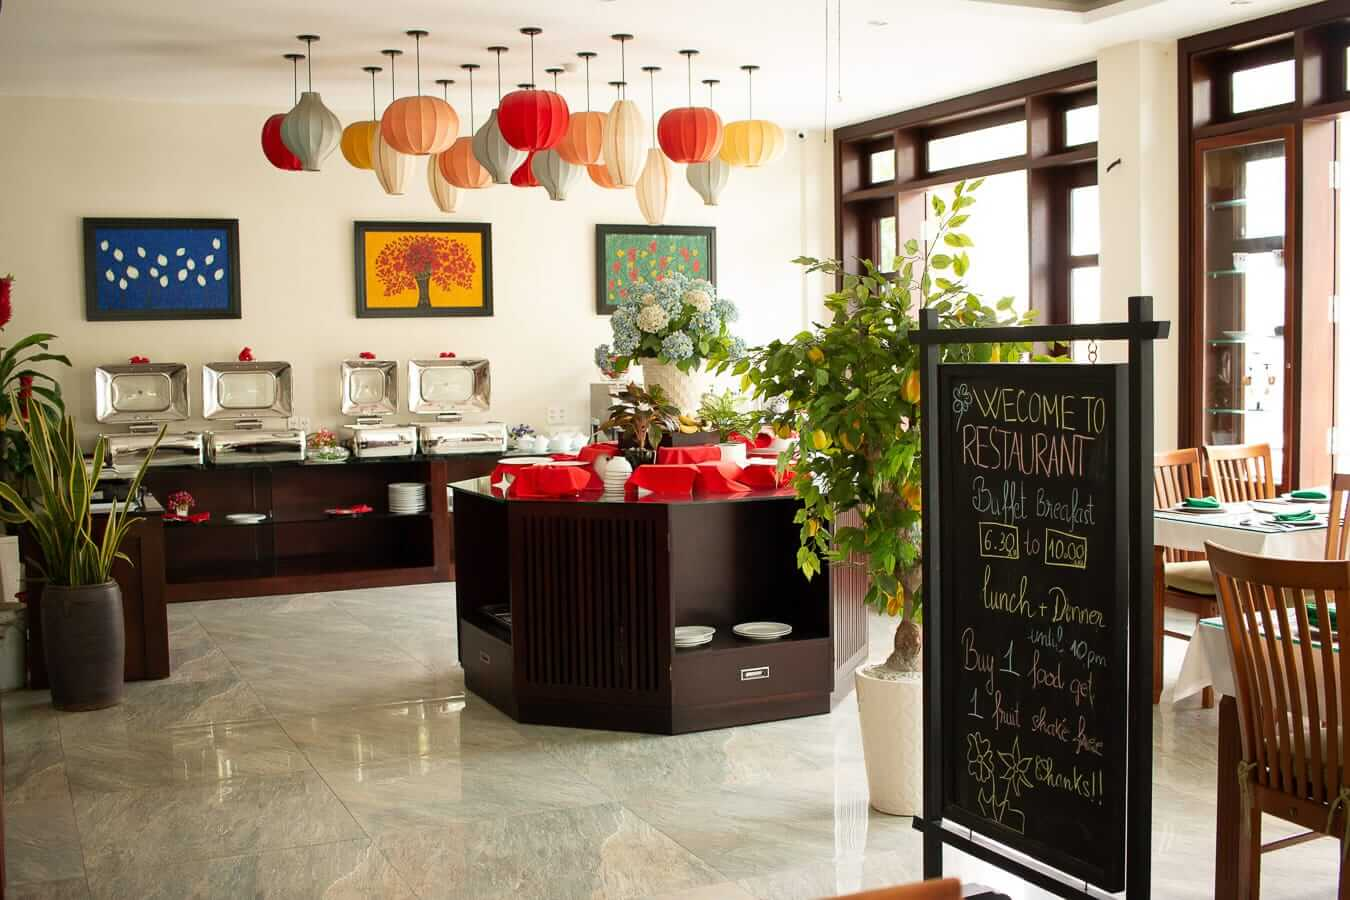 Green Apple Hotel: Where to stay in Hoi An